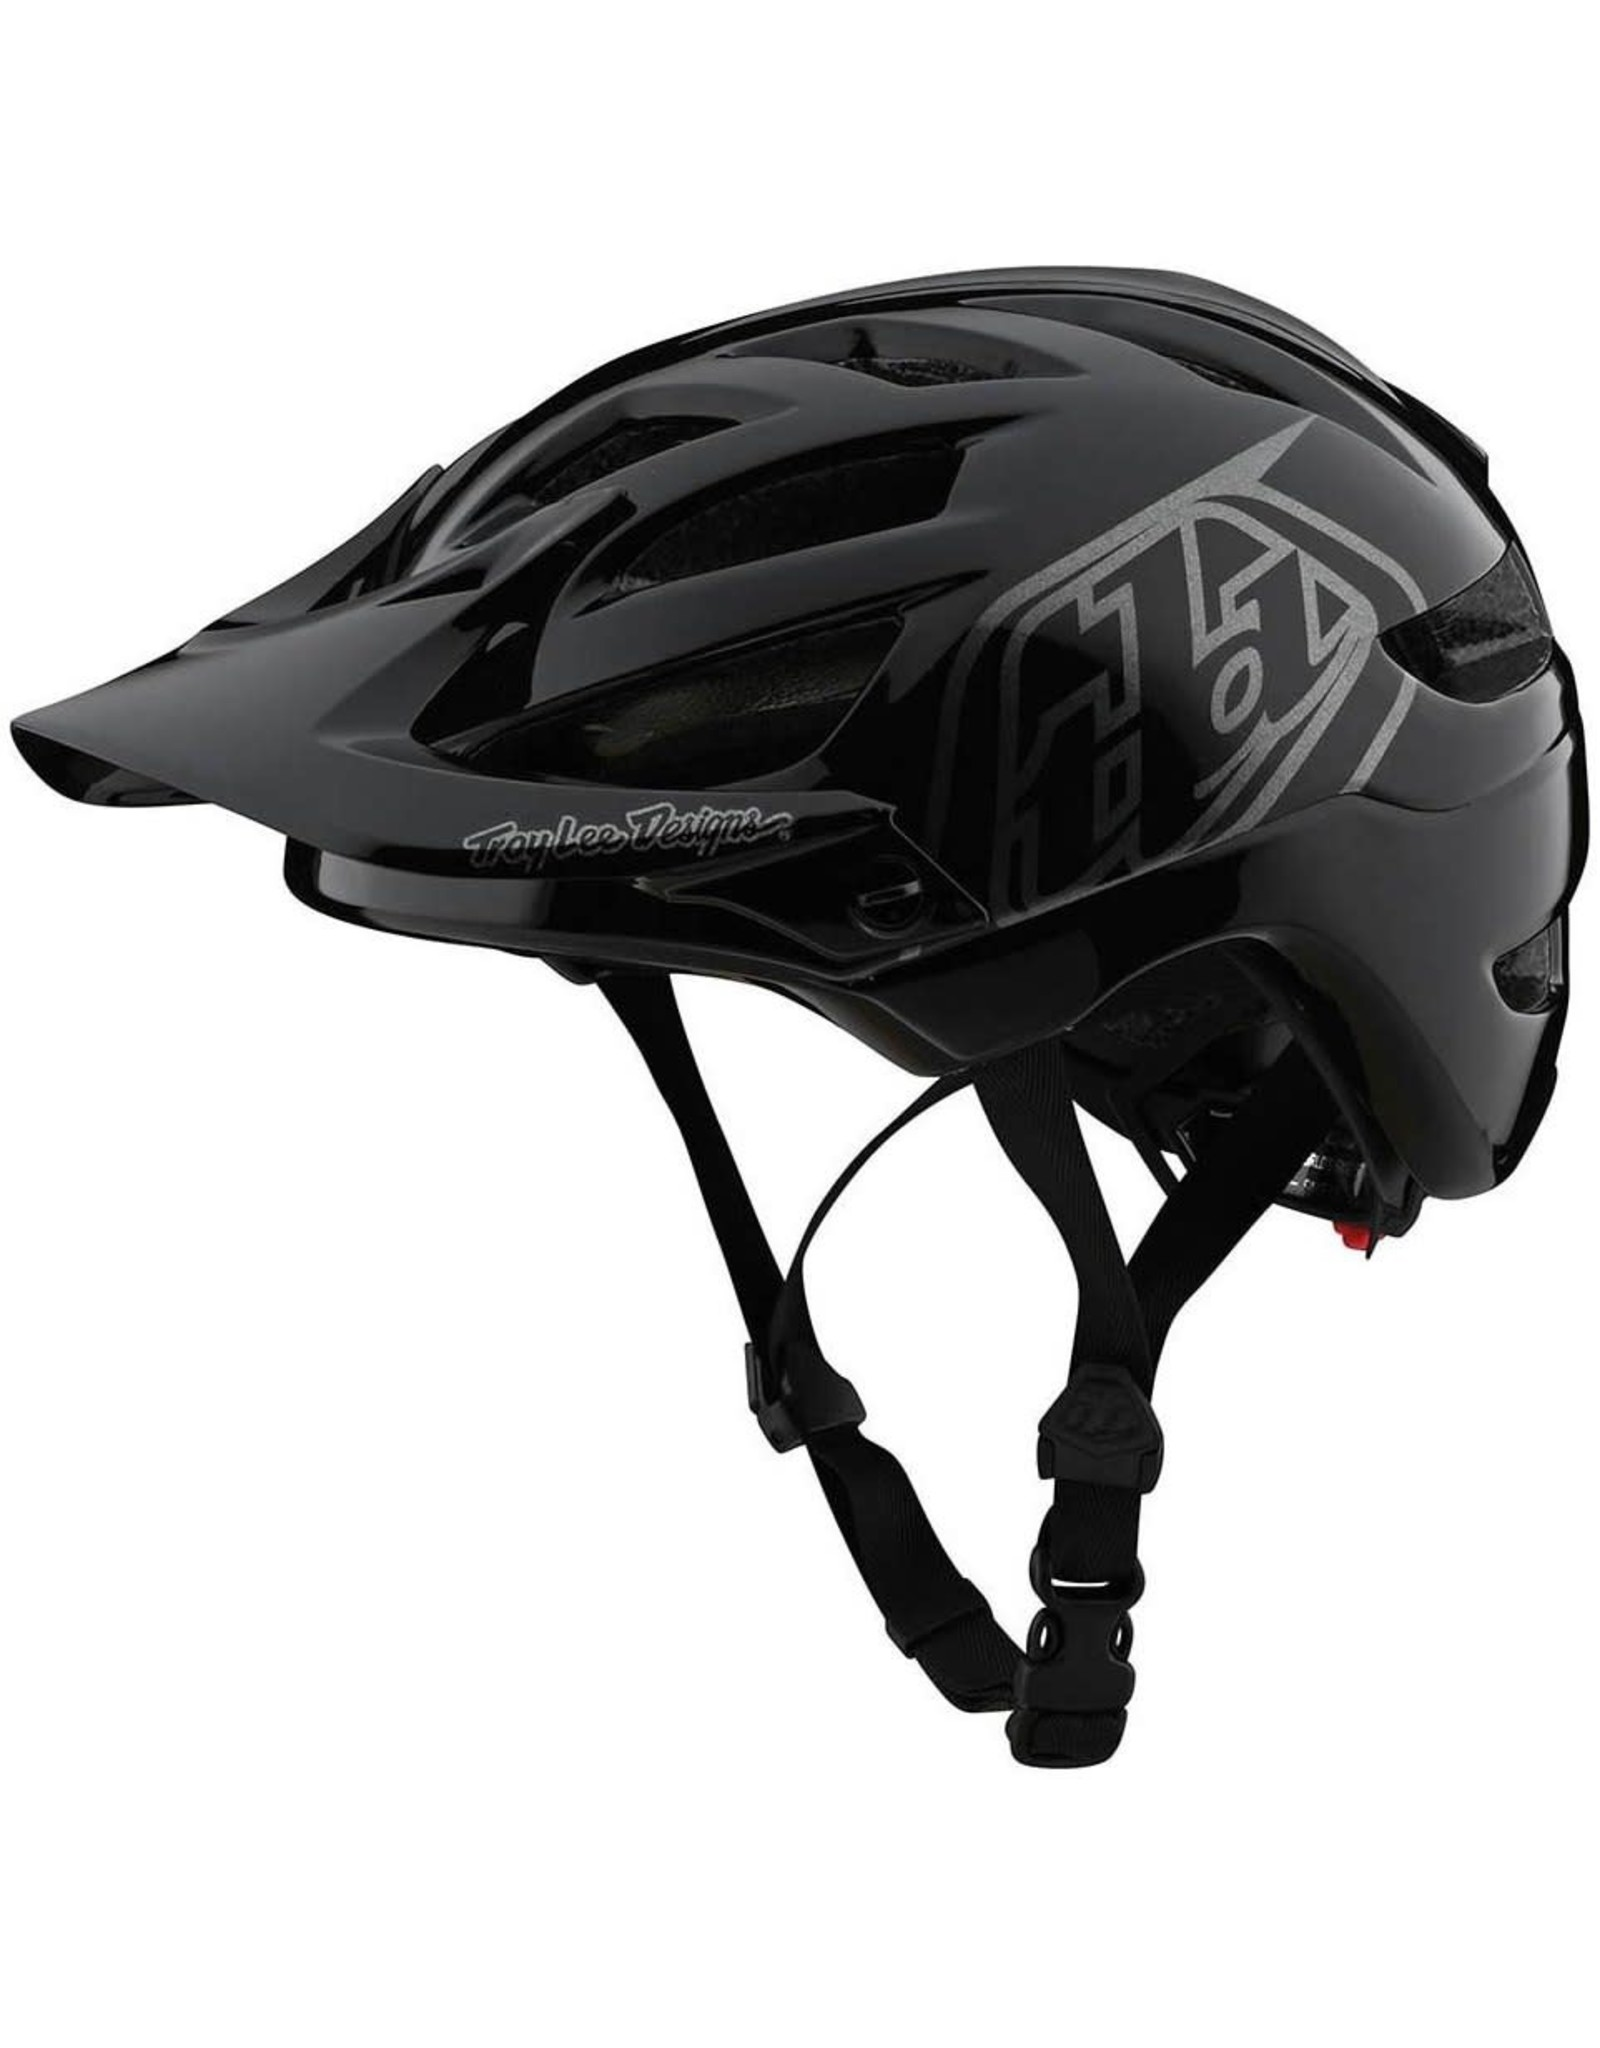 A1 HELMET; DRONE BLACK / SILVER YOUTH